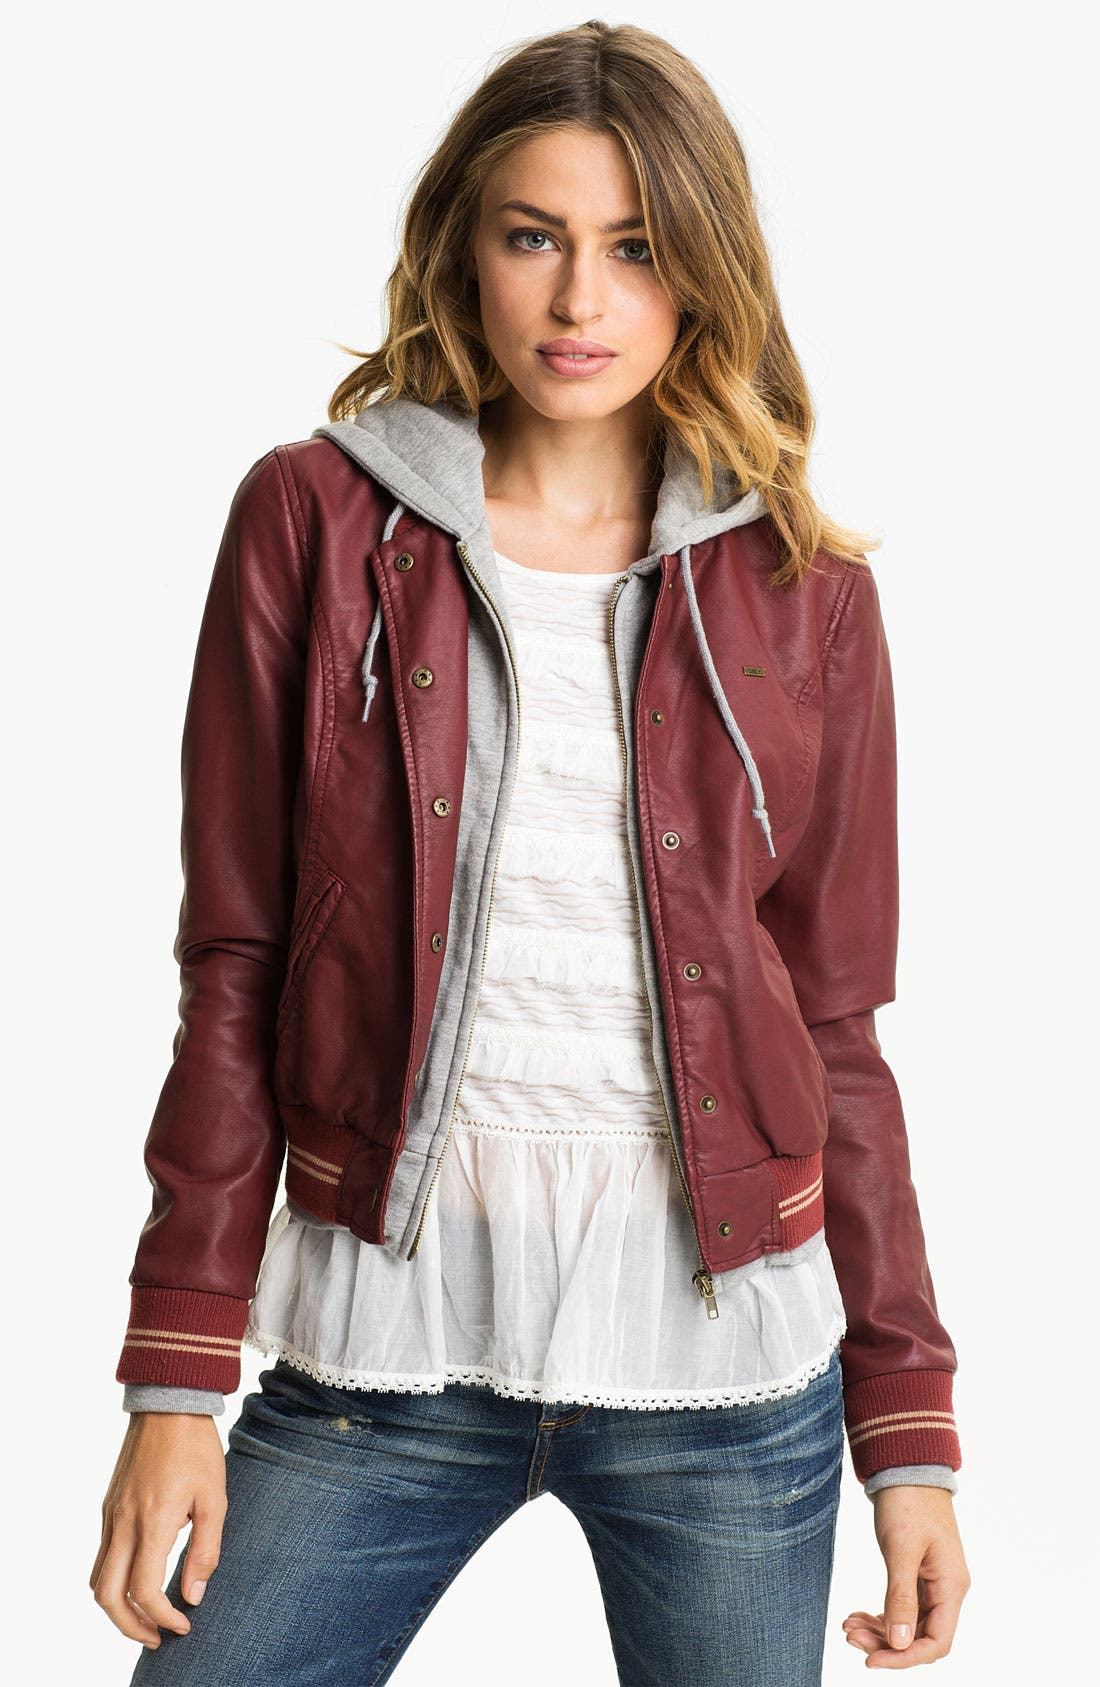 Main Image - Obey Layered Look Faux Leather Varsity Jacket